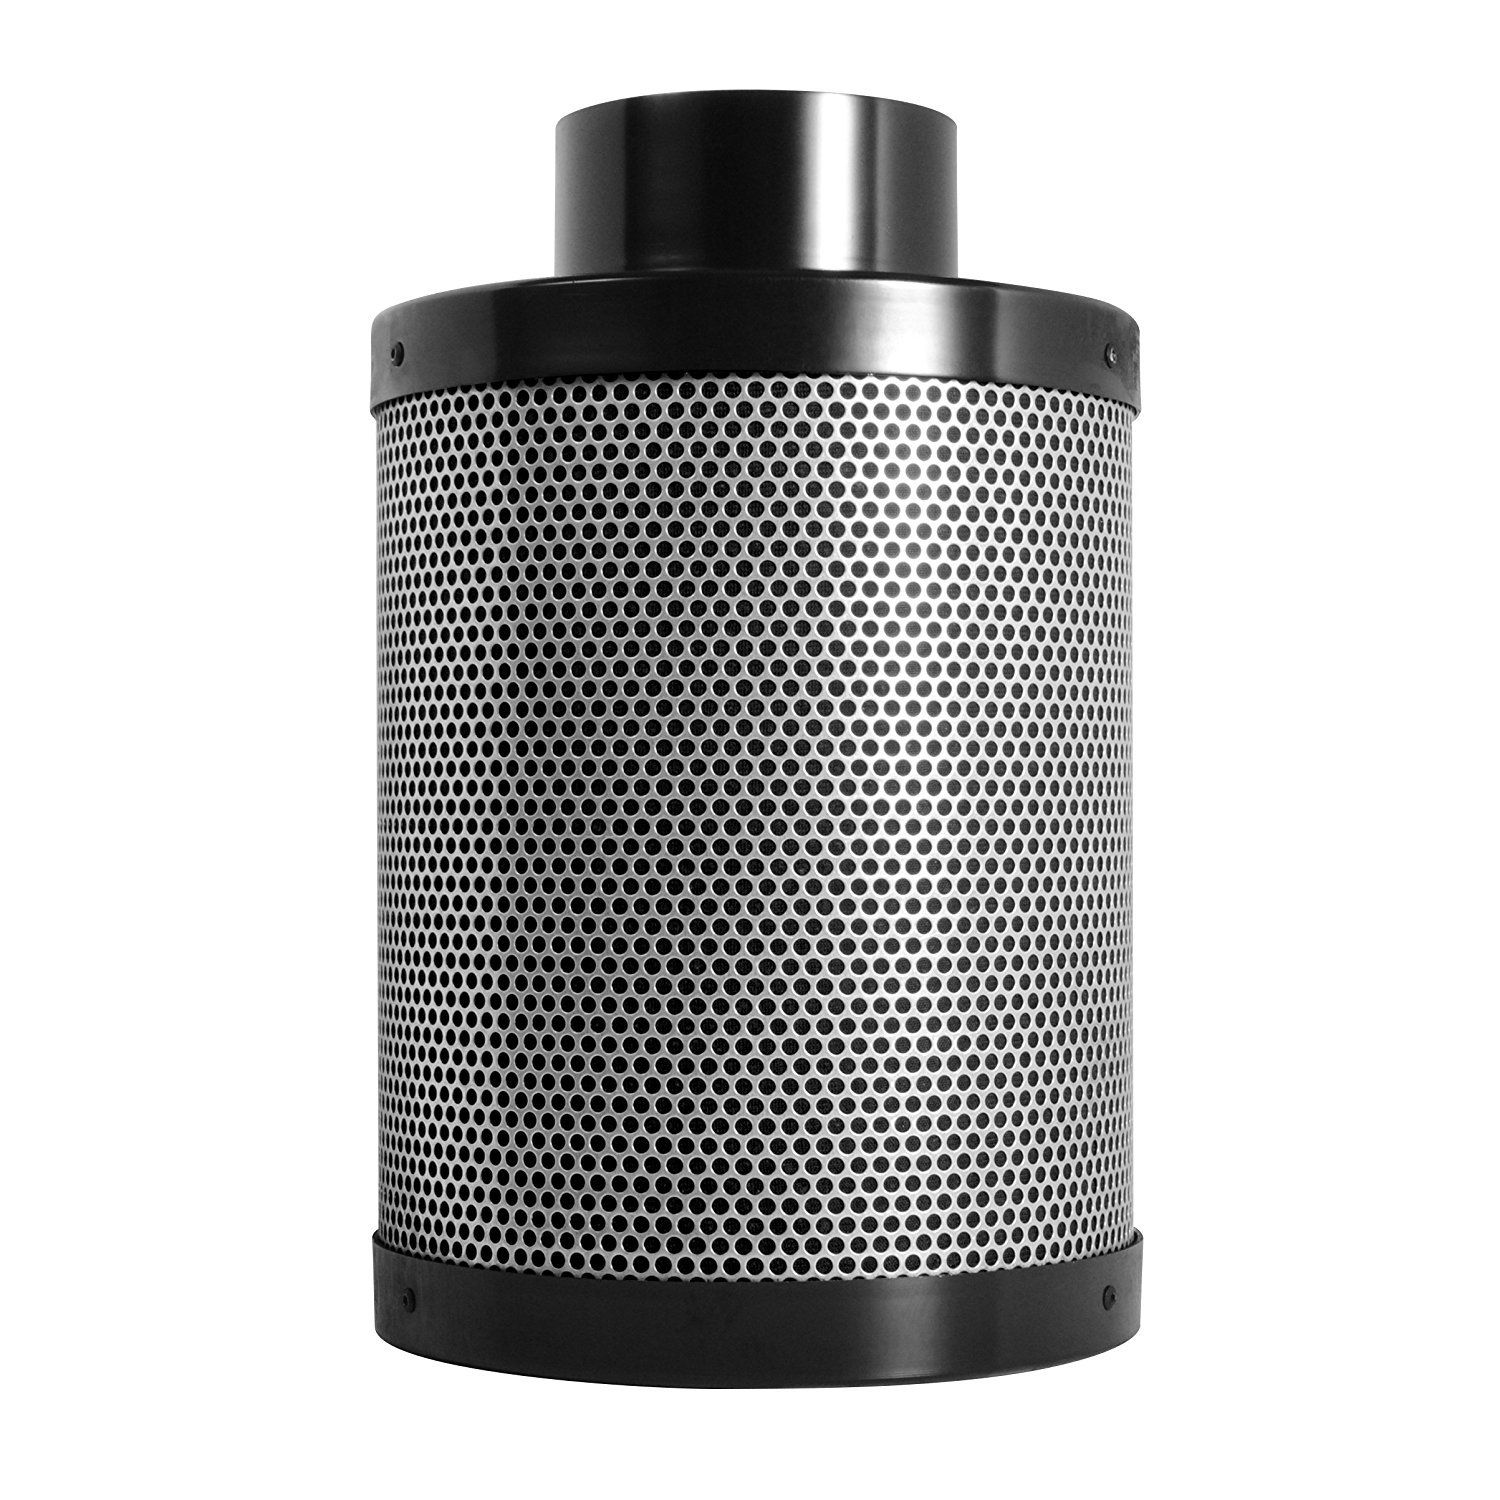 Primegarden 4 Inch Inline Fan Carbon Air Filter Ducting Combo Pre Filter Included For Hydroponics Indoor Grow Tent Ventilation System 4 Fan Filter Kit Inline Fan Growing Plants Indoors Grow Tent